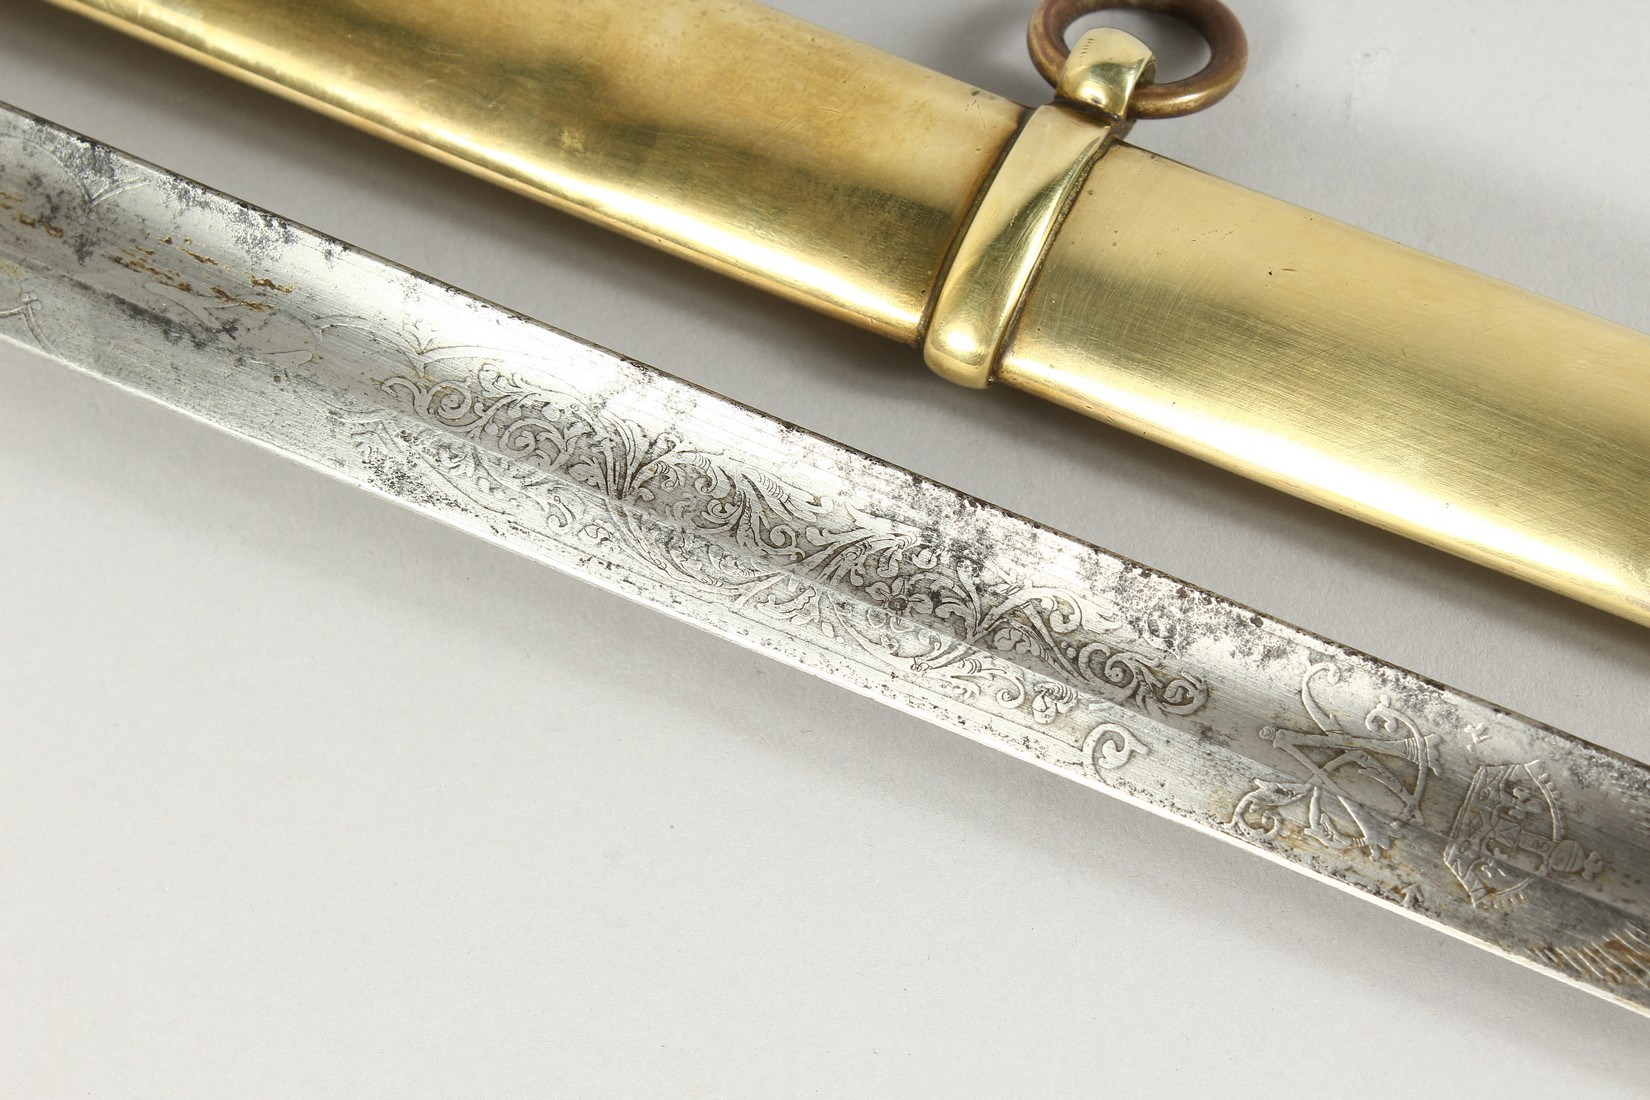 A GOOD VICTORIAN NAVAL SWORD with shagreen handle and engraved blade, V R & Crown inc., brown - Image 14 of 25